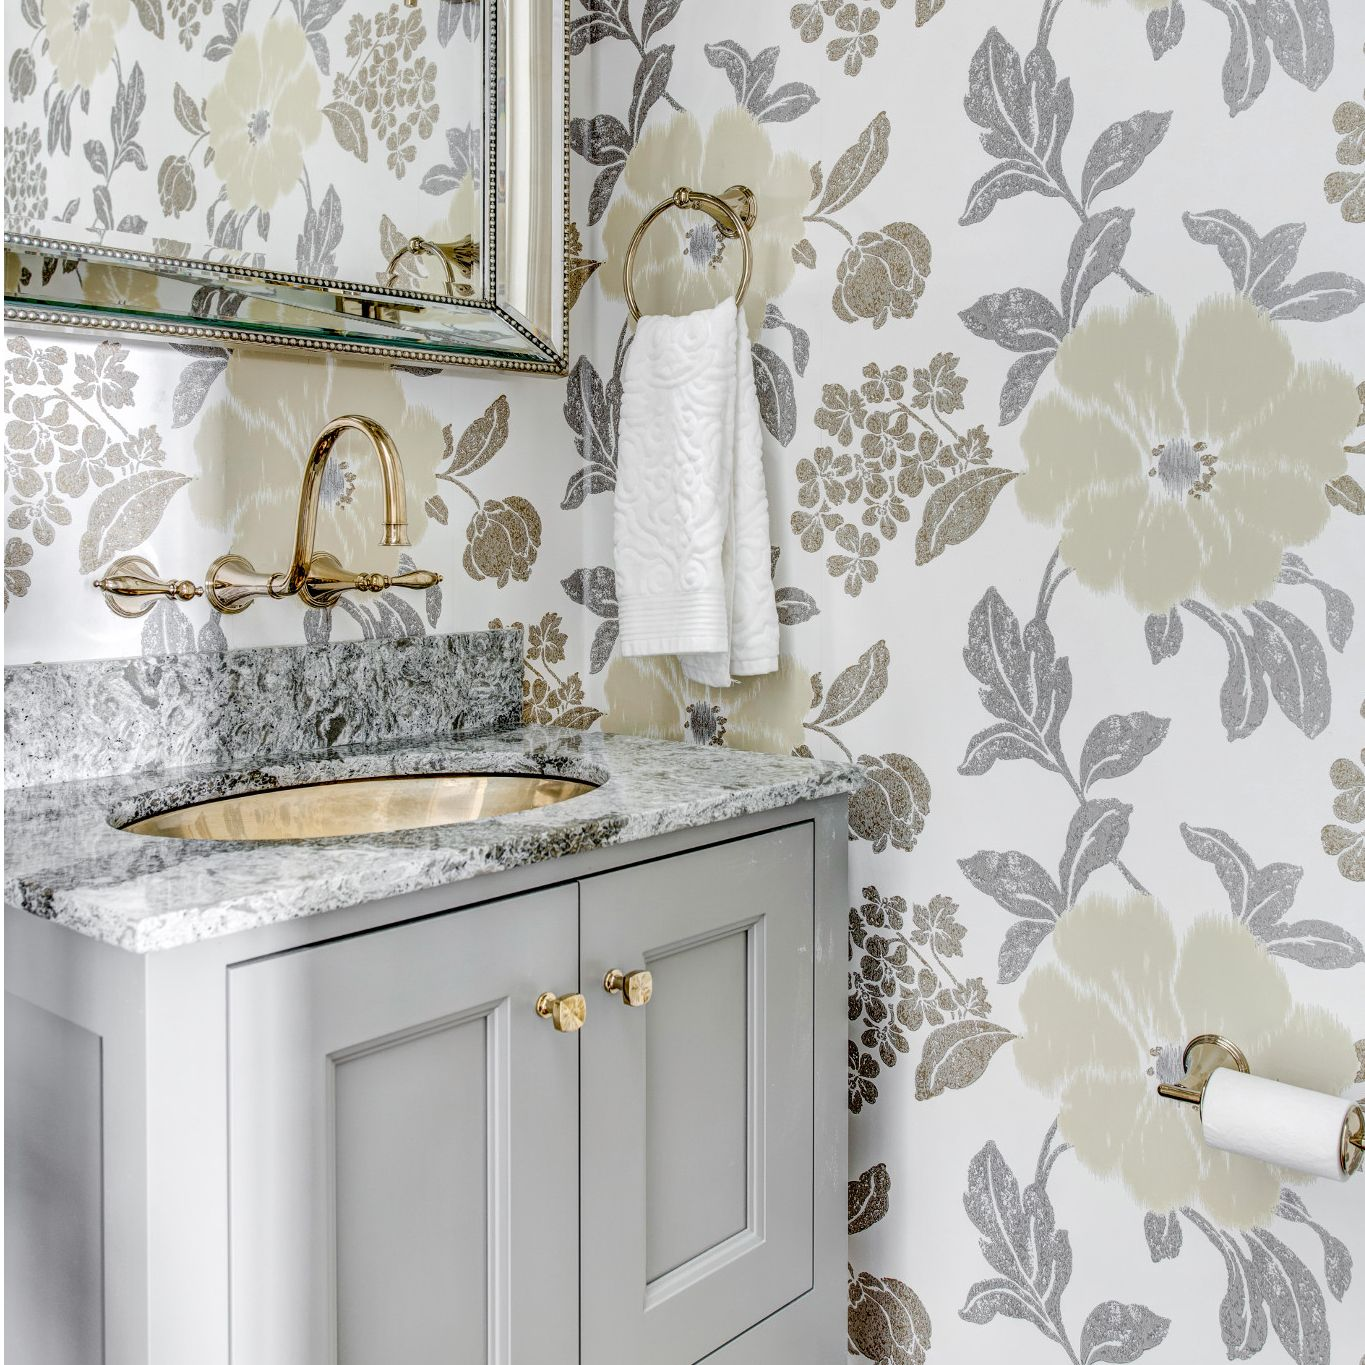 Don't be afraid to add a patterned wallpaper to Cambria Galloway for a unique look.